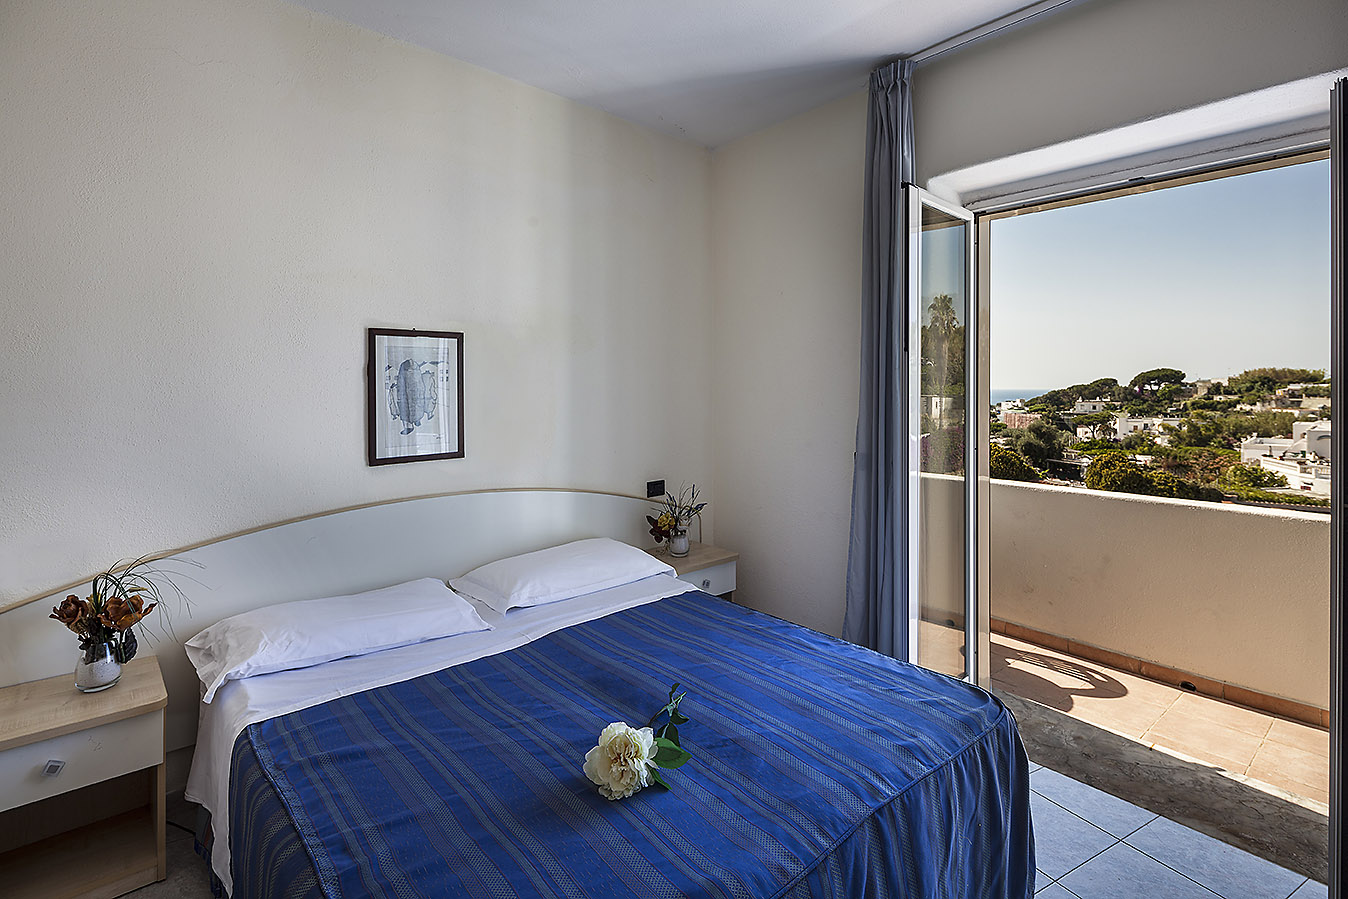 Sorriso Resort Ischia - Camere / Rooms